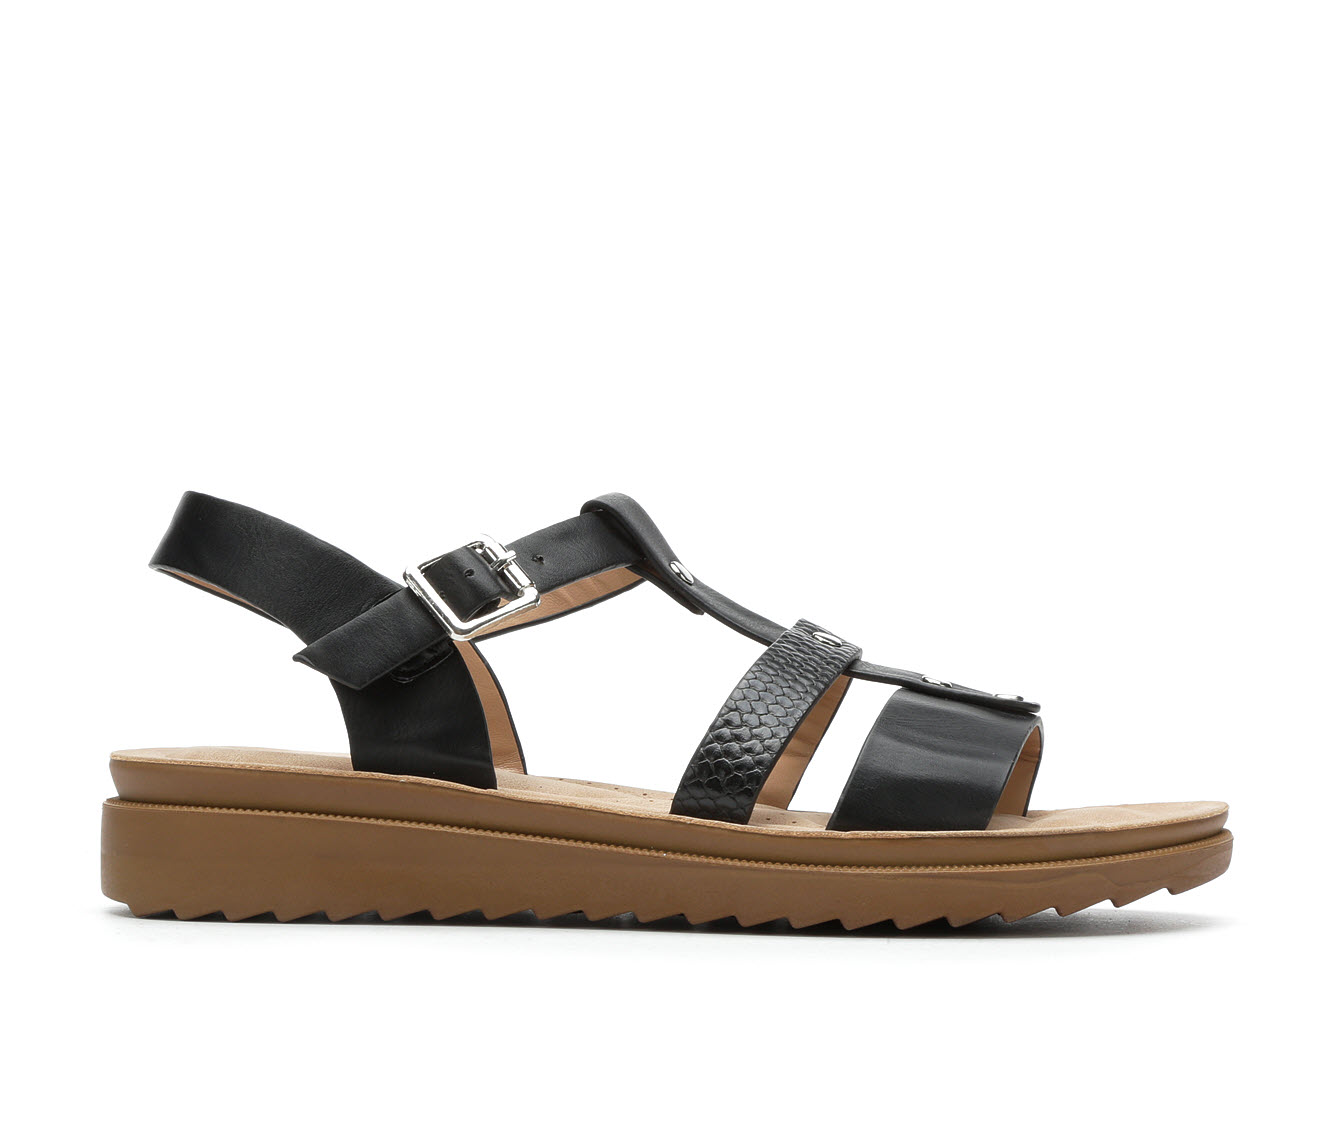 Andiamo Oilly Women's Sandal (Black Faux Leather)